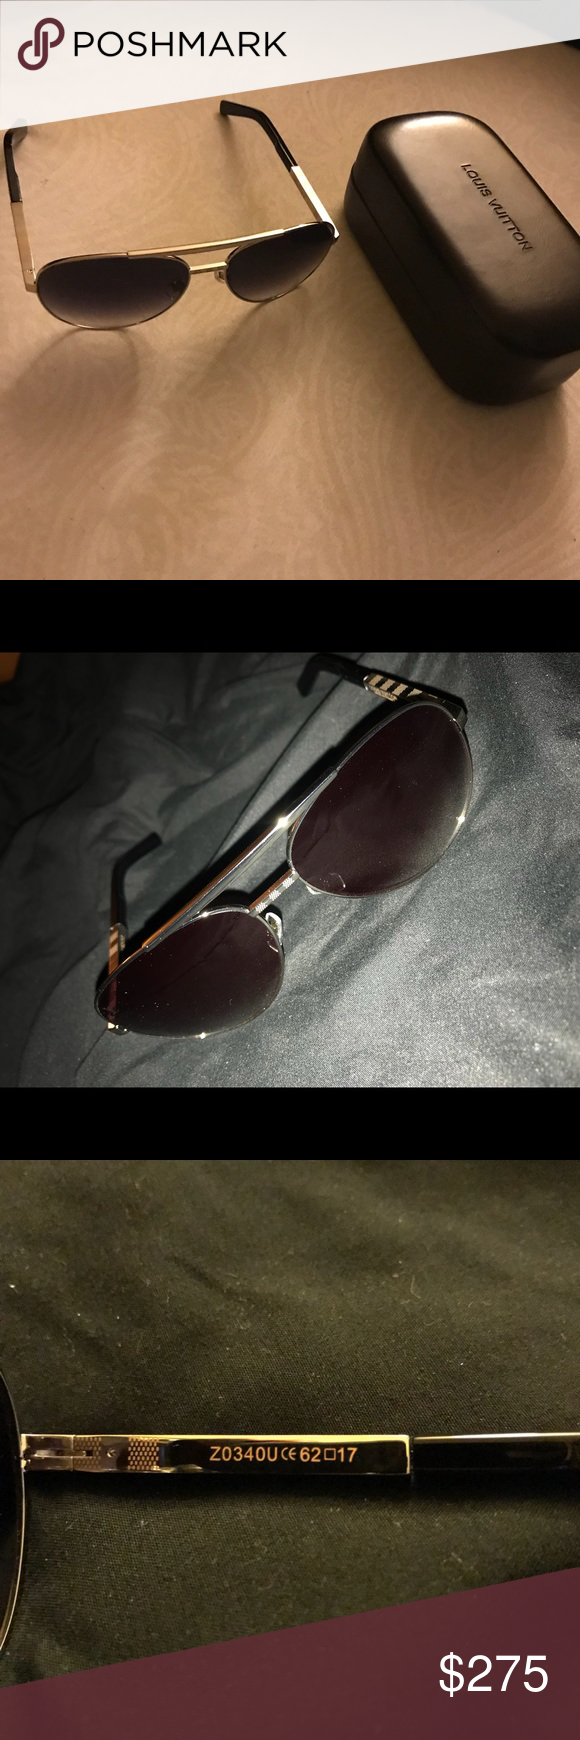 15f9a2aac0cc4 Louis Vuitton Sunglasses Authentic Z0340U Attitude Pilote Sunglasses. Mint  condition. No scratches or any